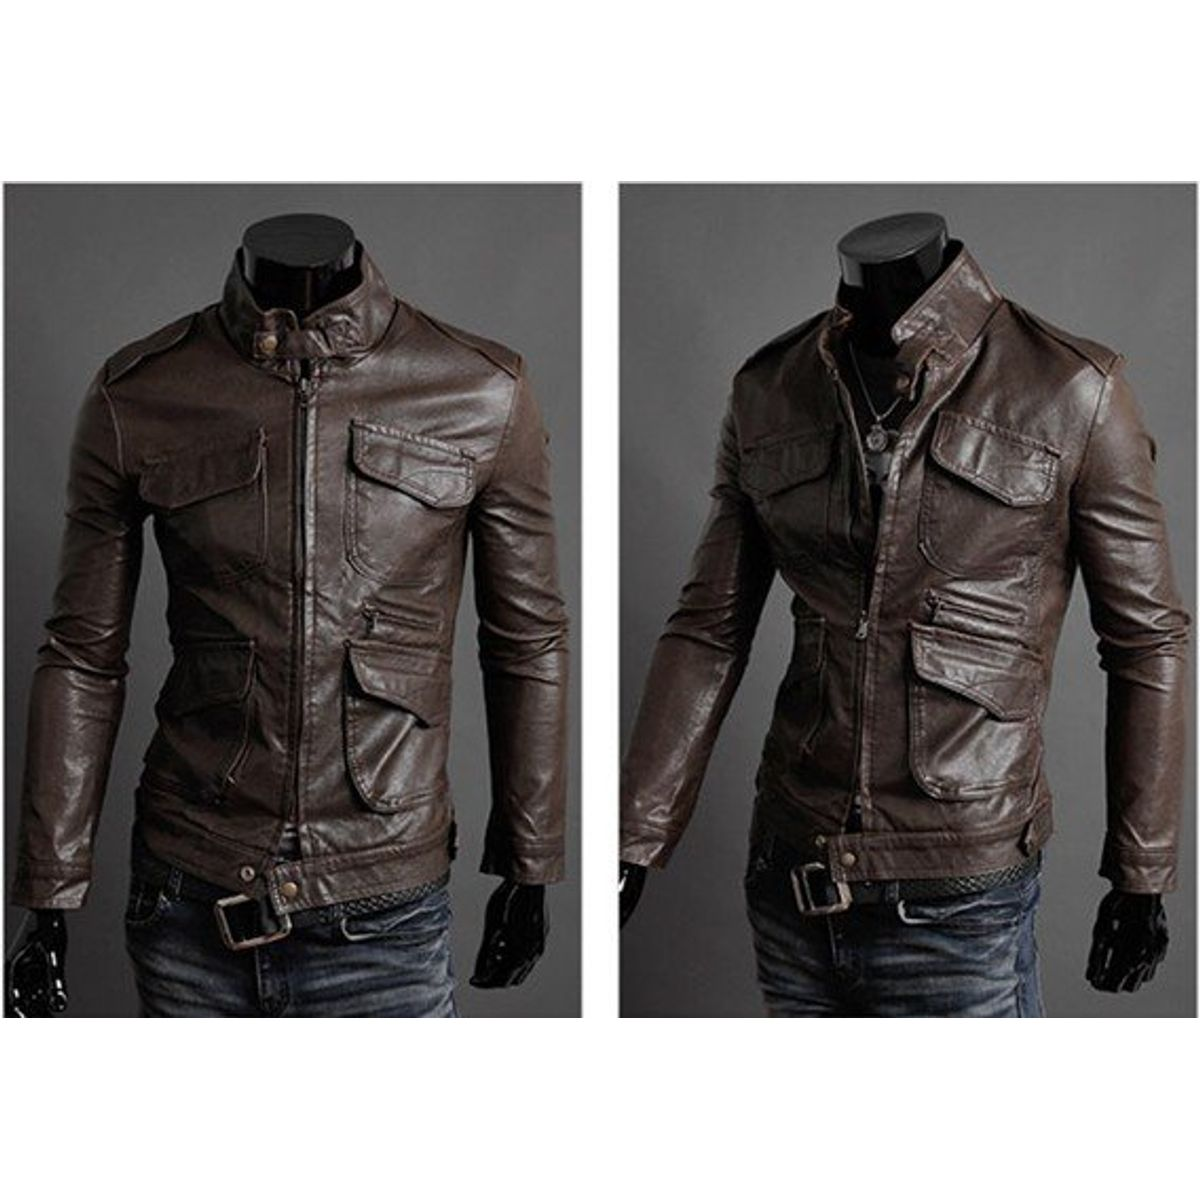 Italiano TUCCI Vintage Slim Fit Padding Style Designer Mens Semi Leather Jacket Brown P016